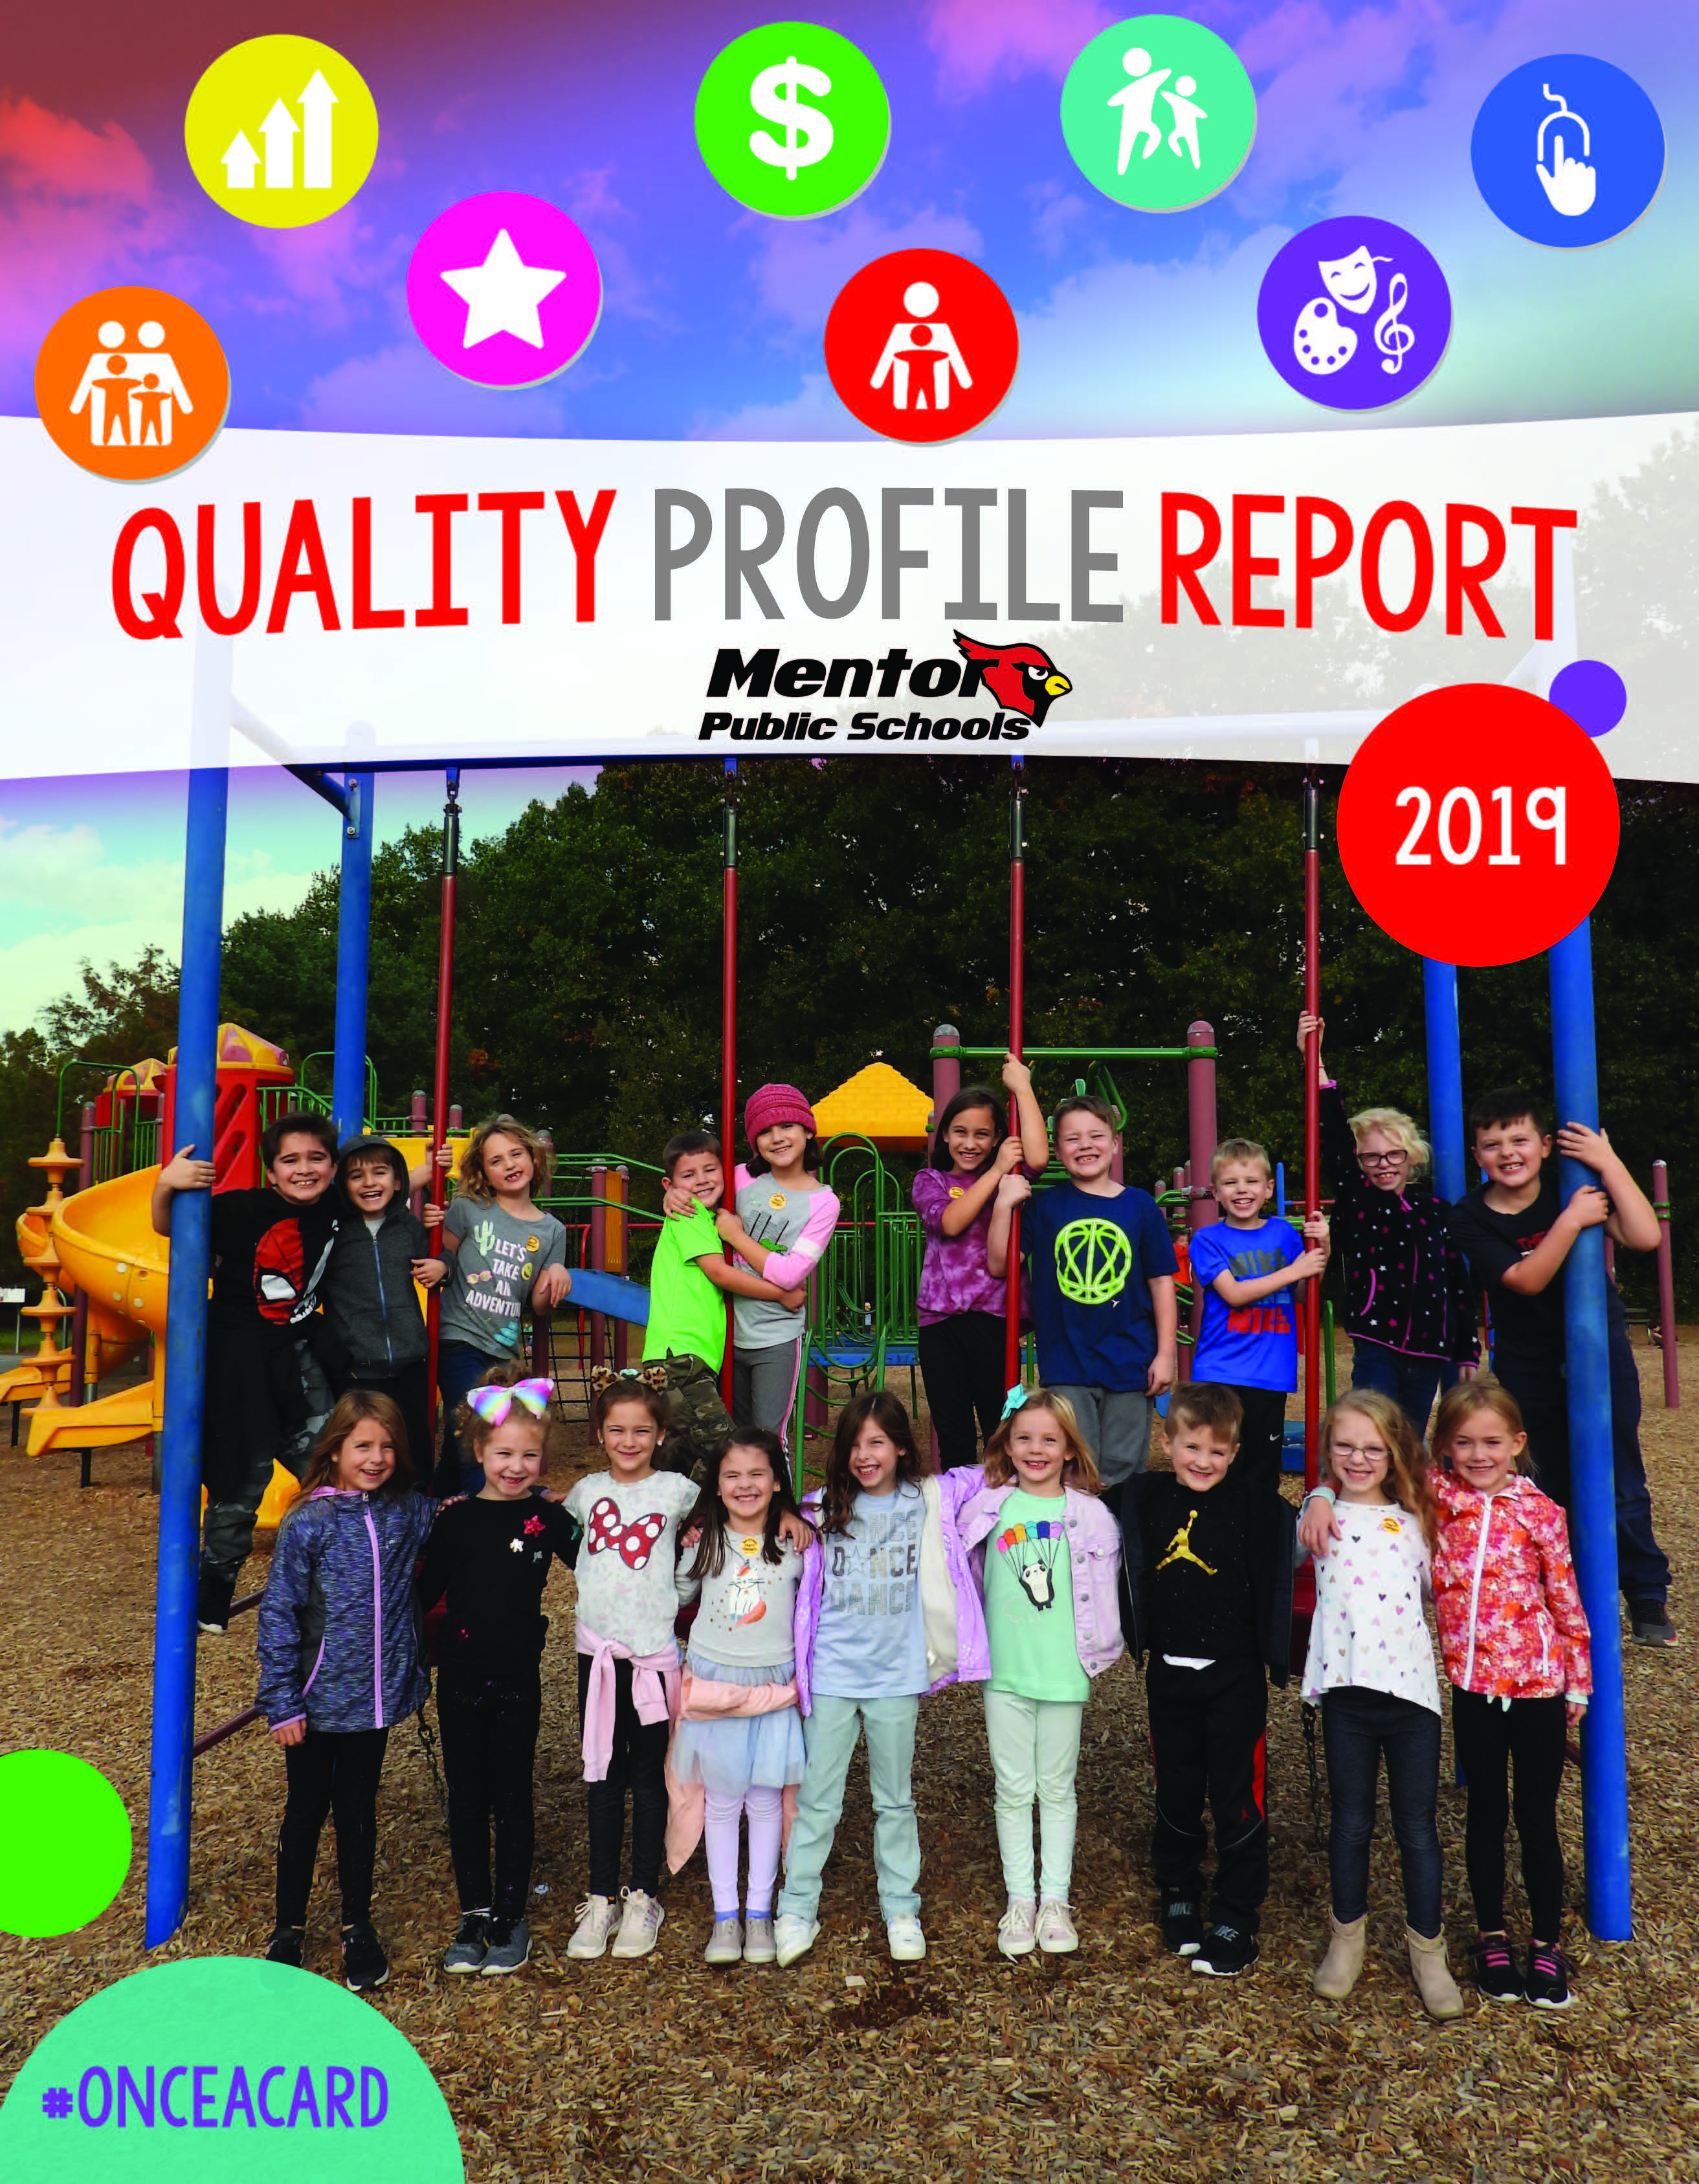 Cover of the Quality Profile Report Including children playing on the playground